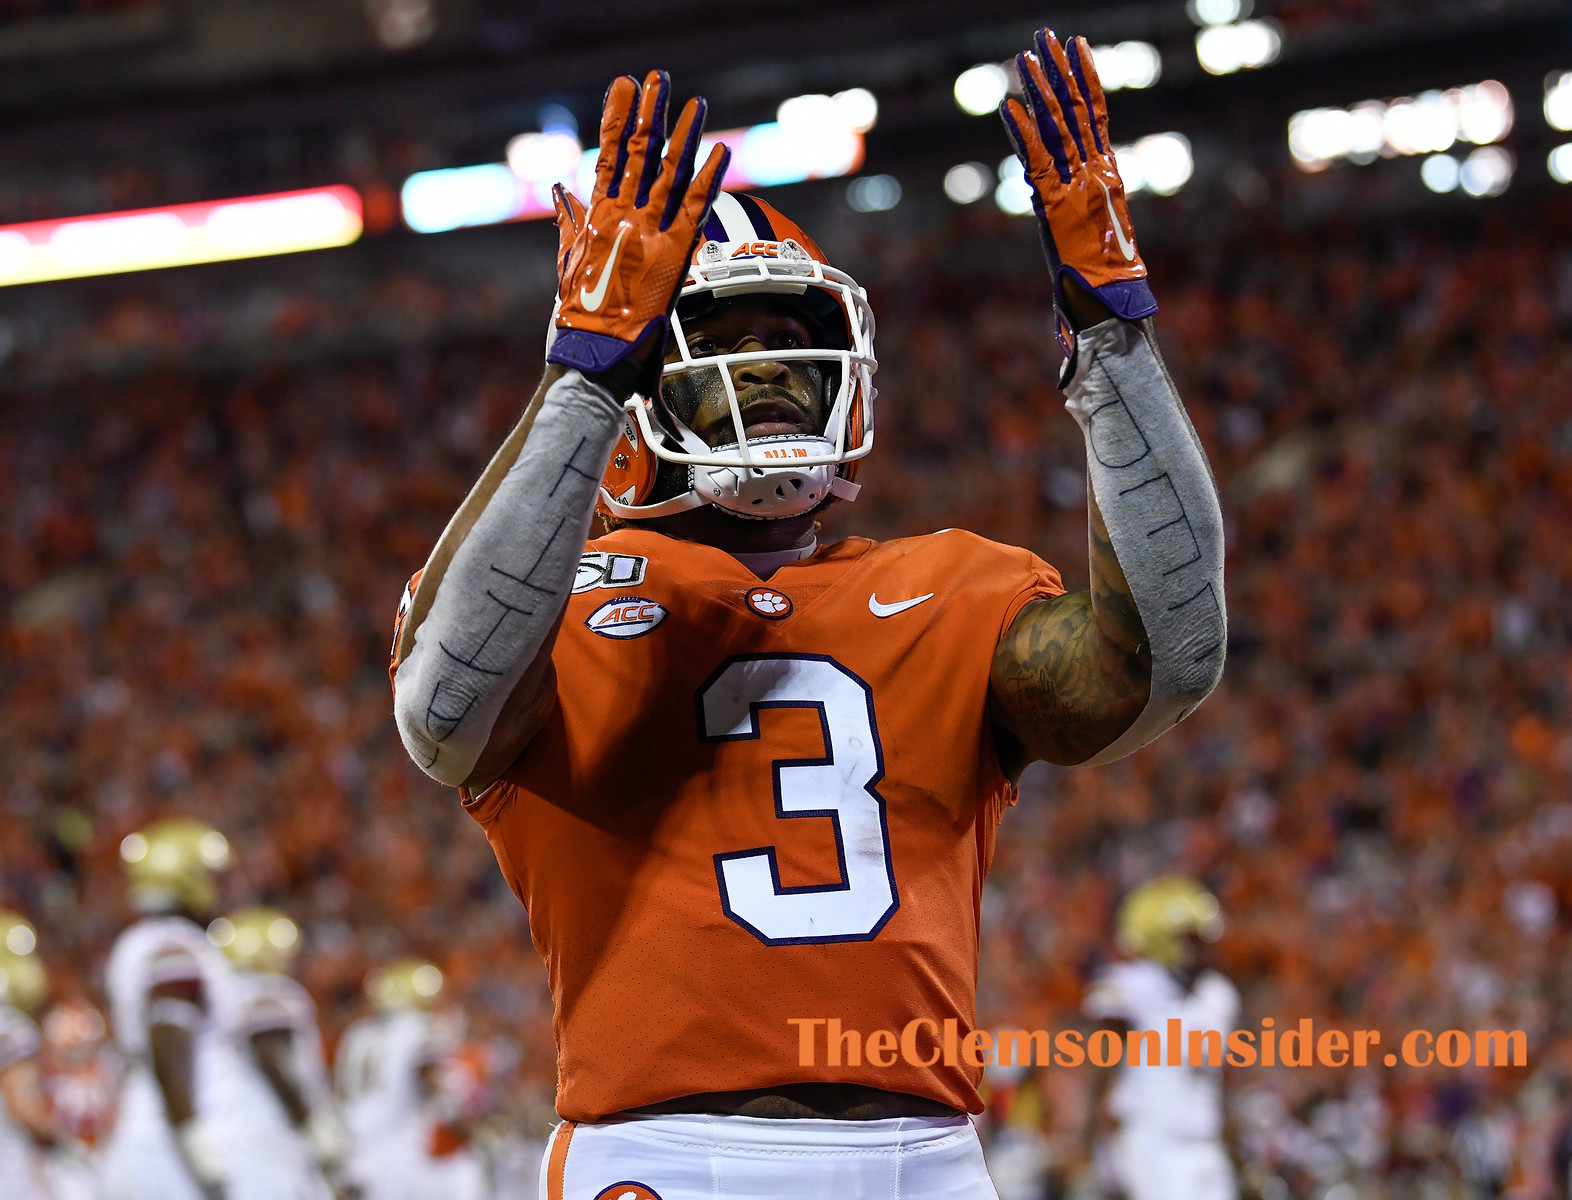 Clemson wide receiver Amari Rodgers (3) blows a kiss to the fans on the hill after scoring against Boston College Saturday, October 26, 2019 at Clemson's Memorial Stadium. Bart Boatwright/The Clemson Insider